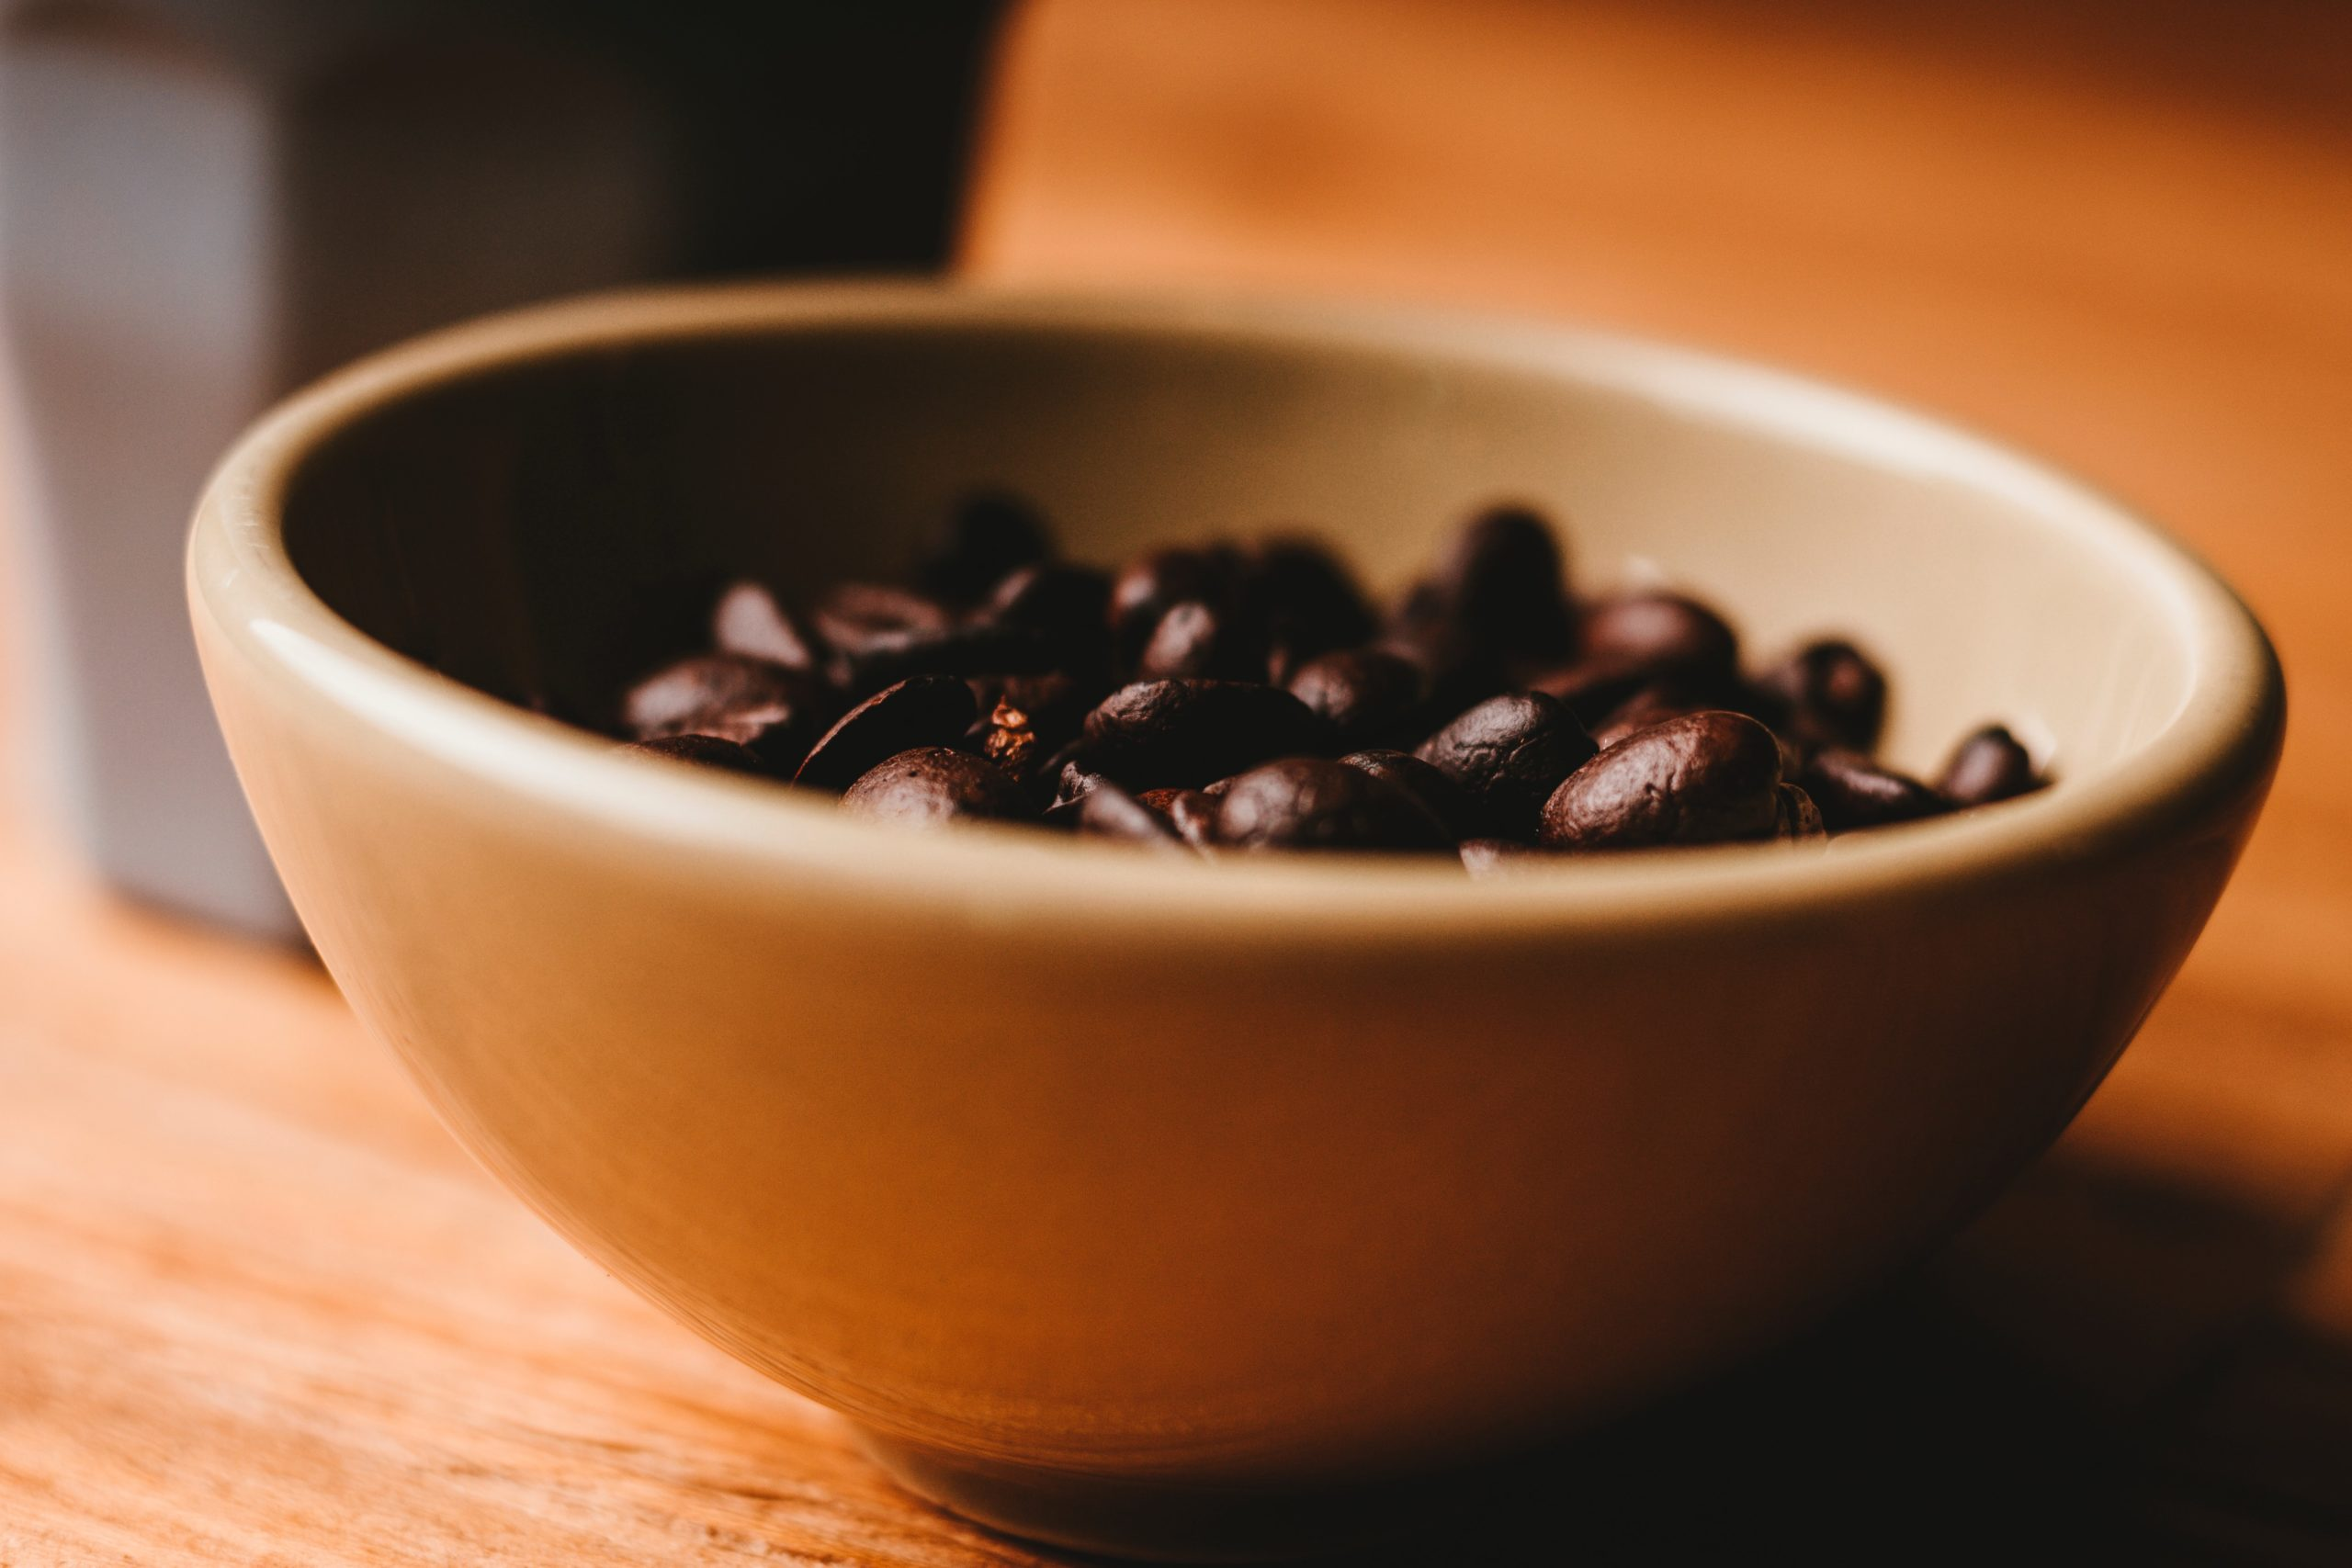 coffee beans in a cereal bowl